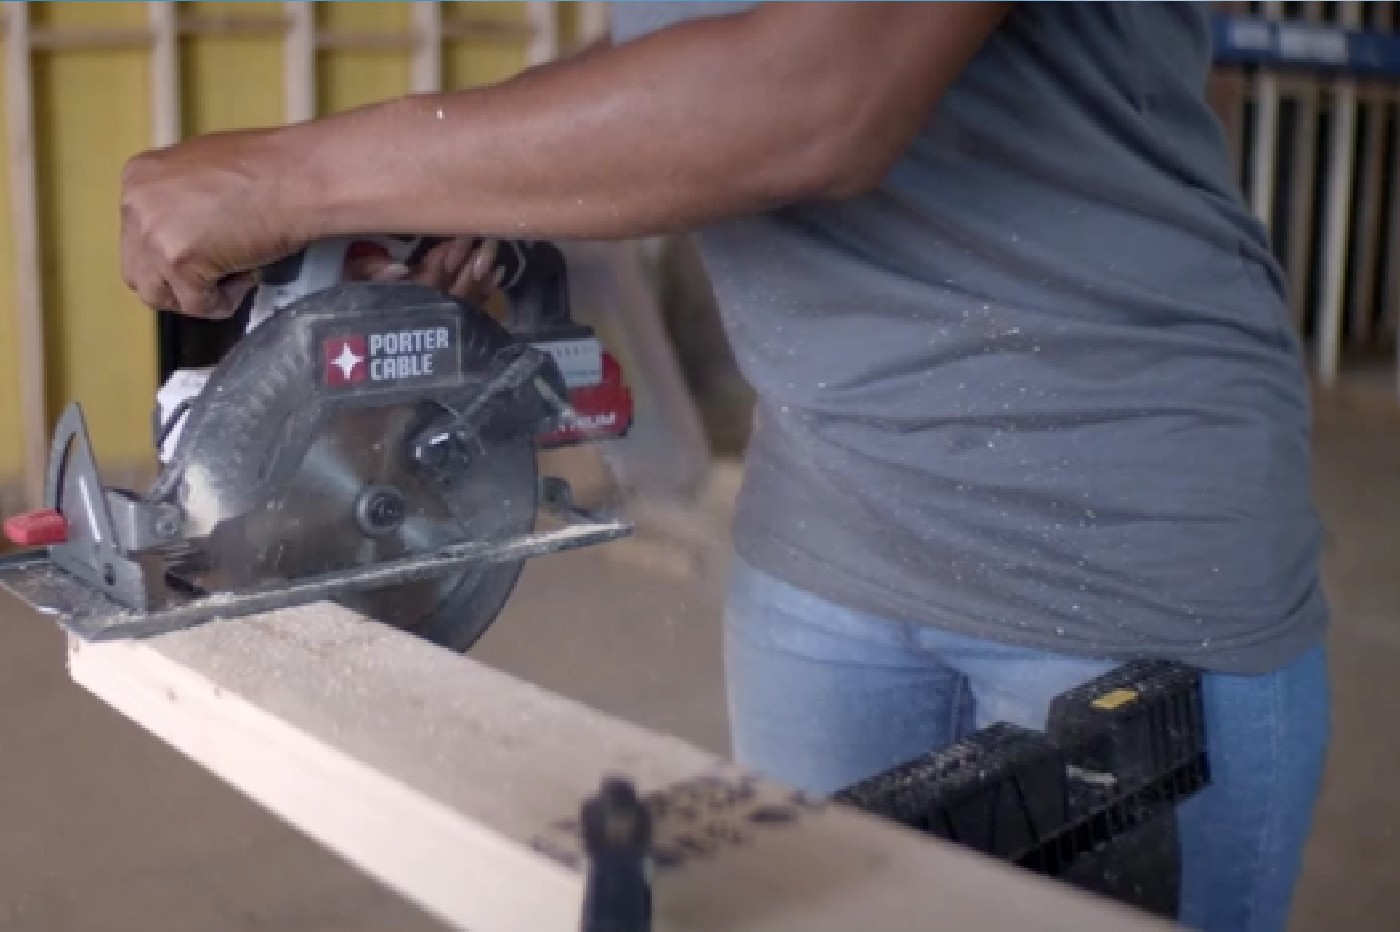 Tractor Supply to Become the Exclusive Retail Destination for PORTER-CABLE Cordless Power Tools and Accessories